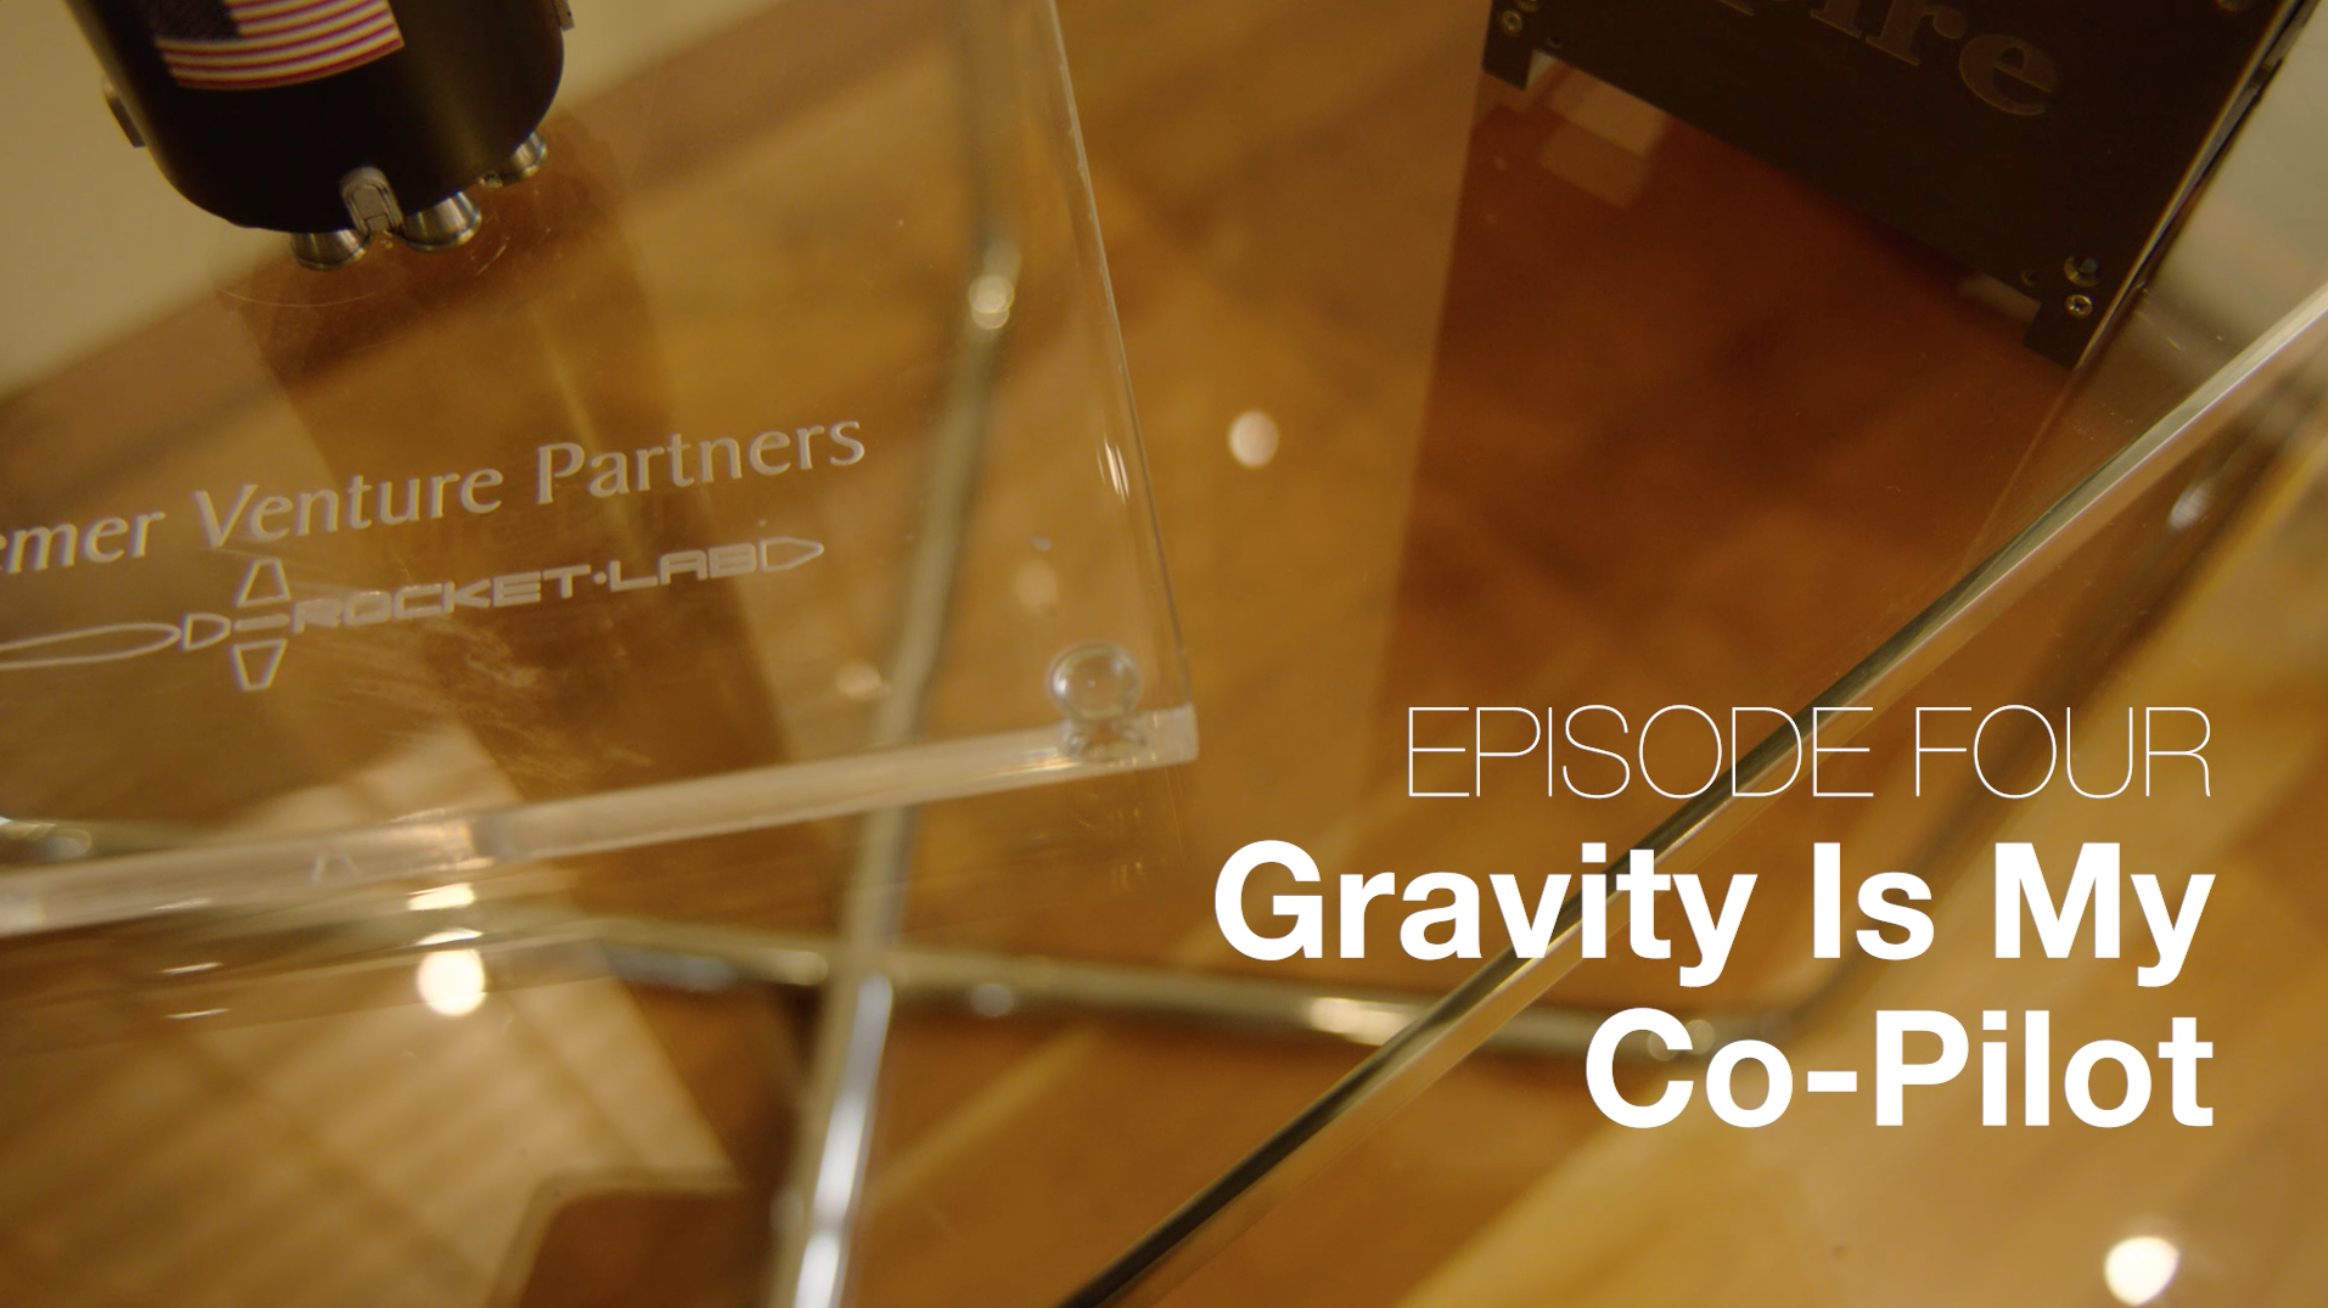 Ep 04 - Gravity Is My Co-Pilot | Bubbleproof